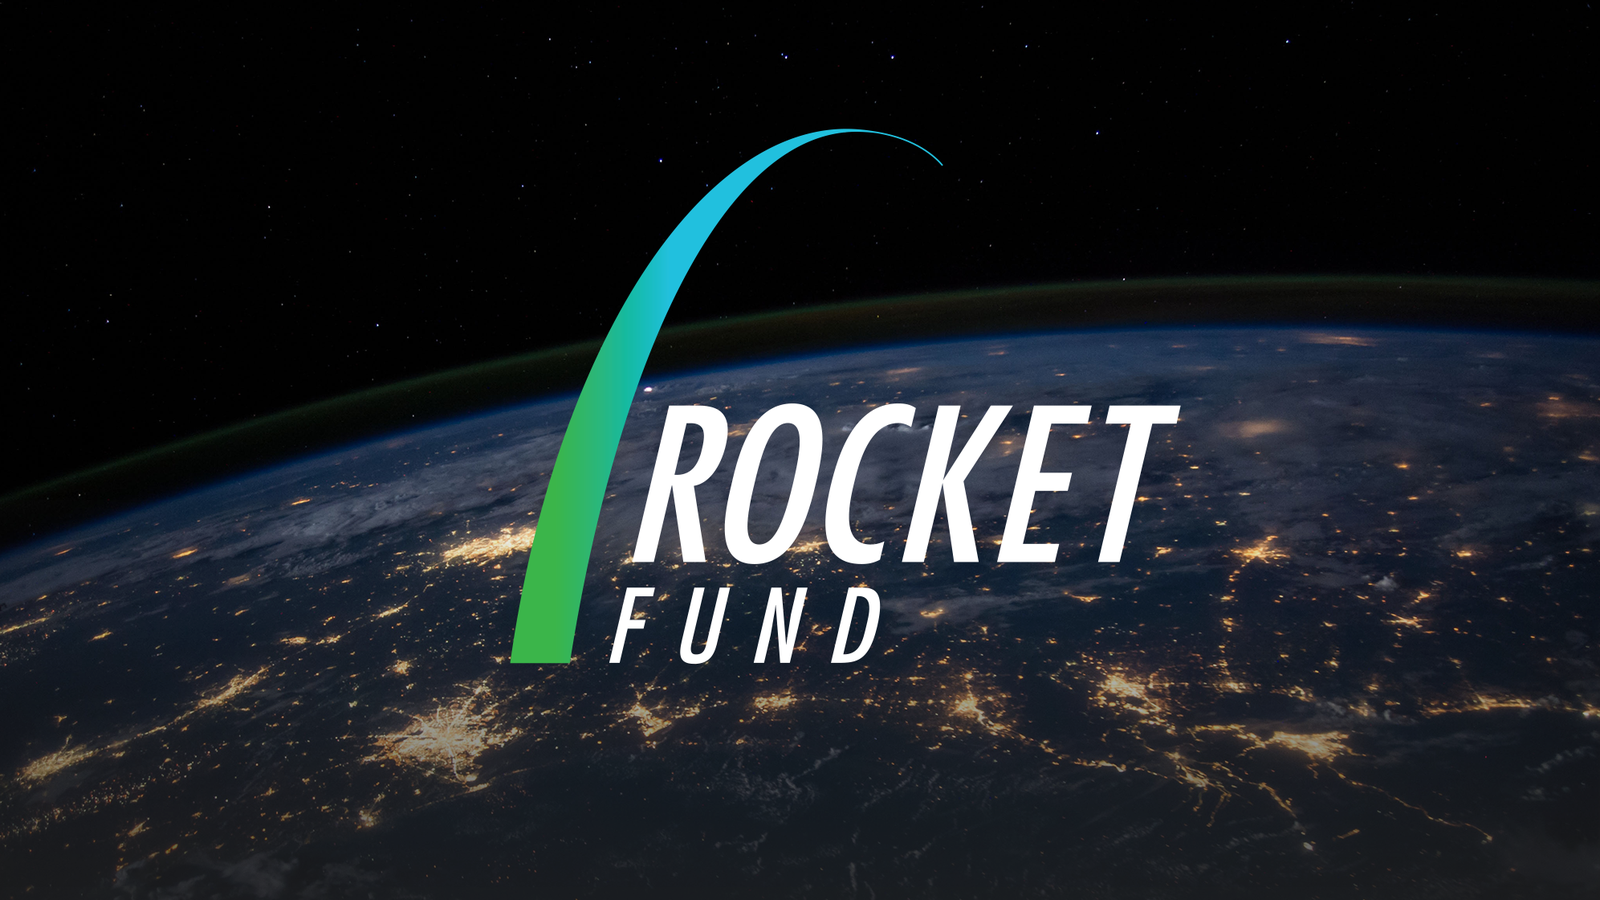 Rocket Fund logo on an image of Earth at Night